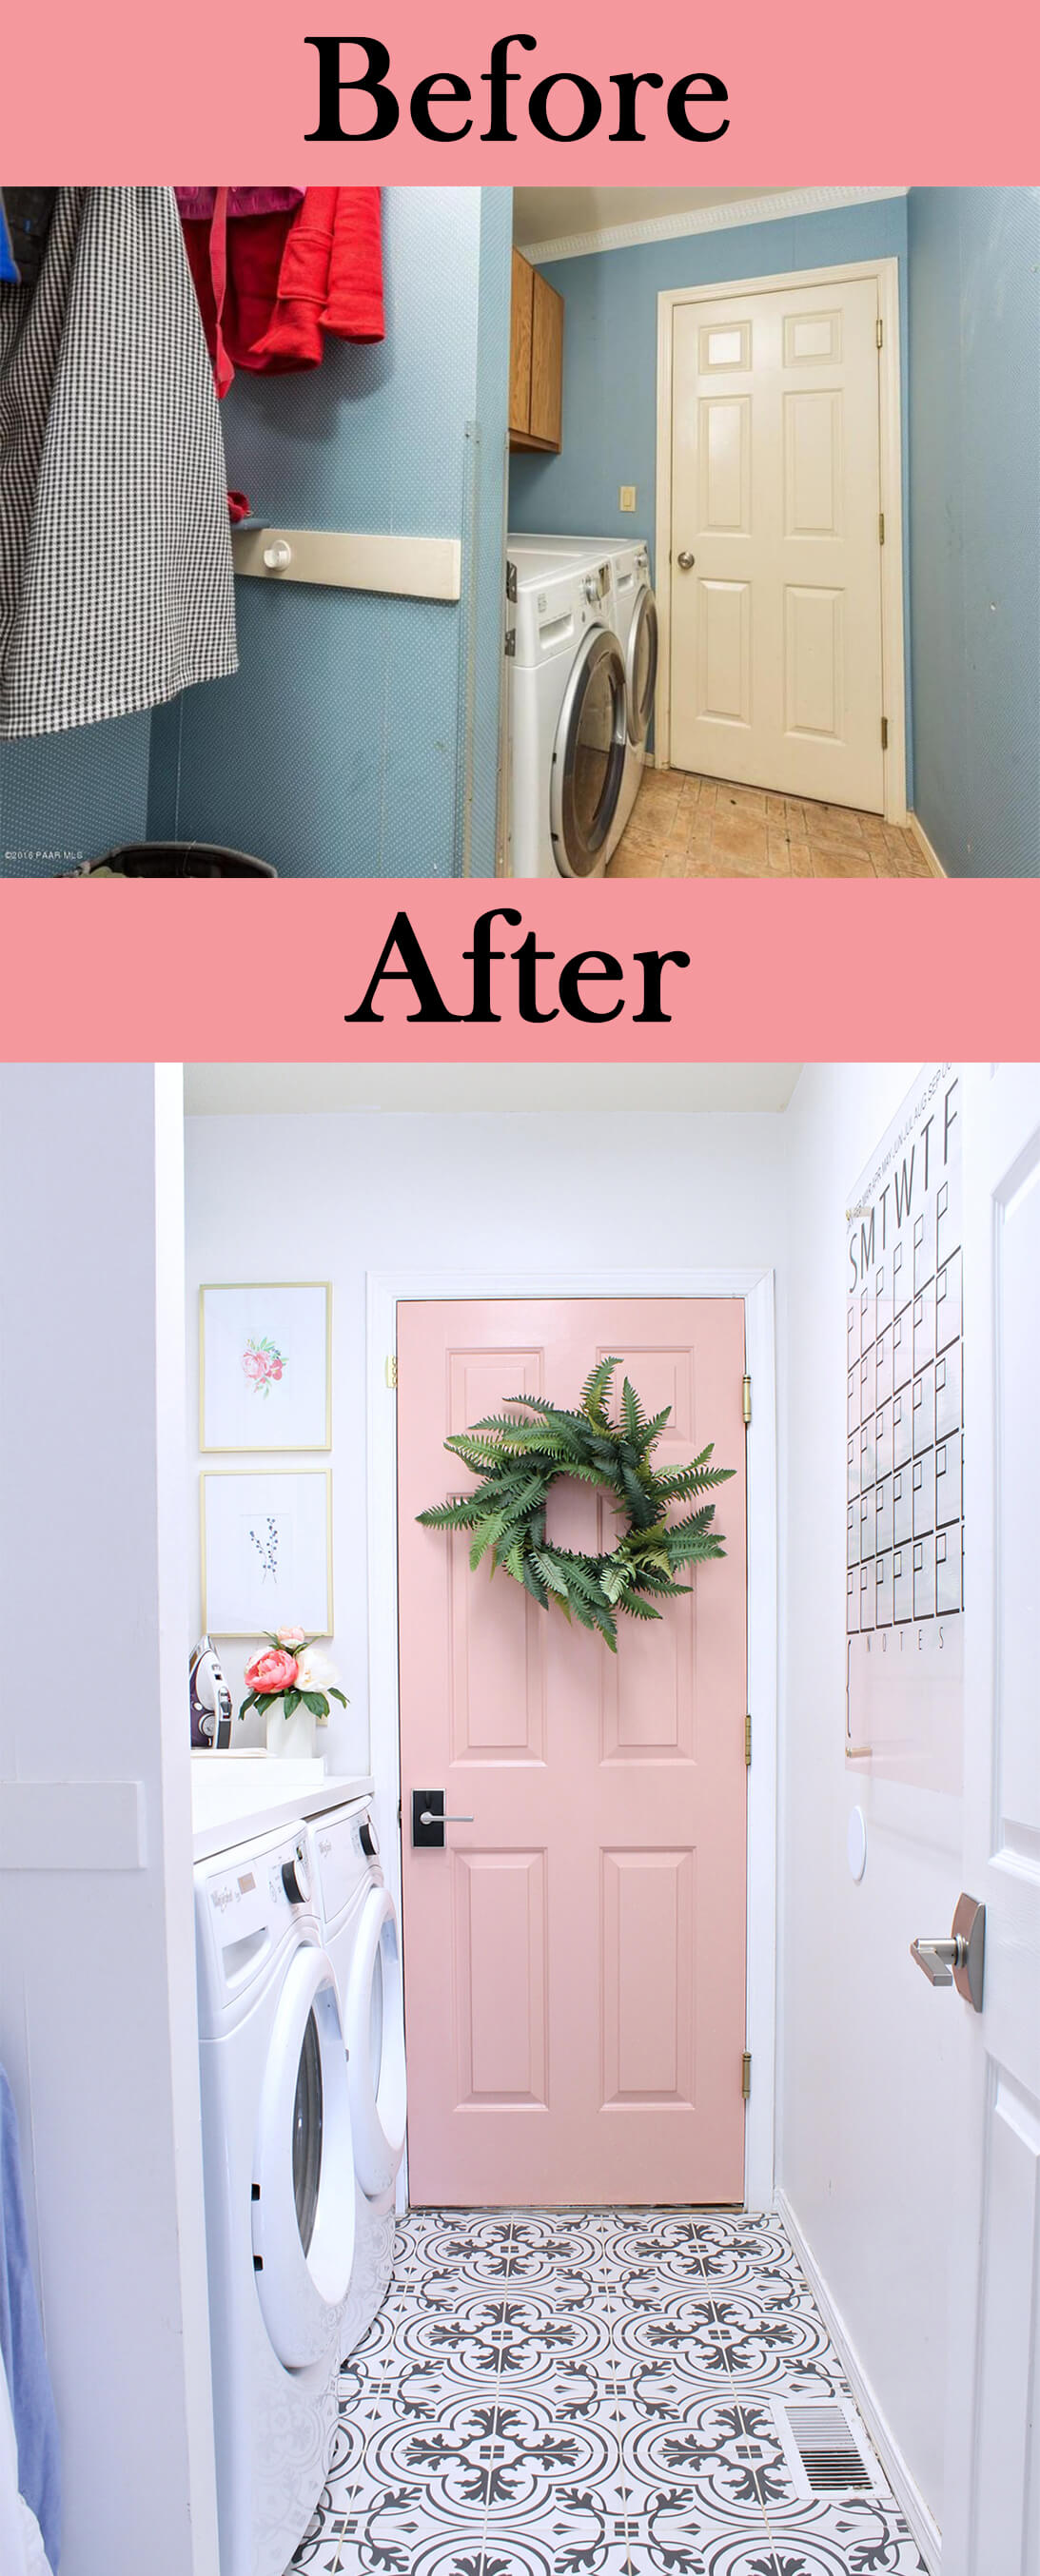 Updated Floor and Pretty in Pink Door